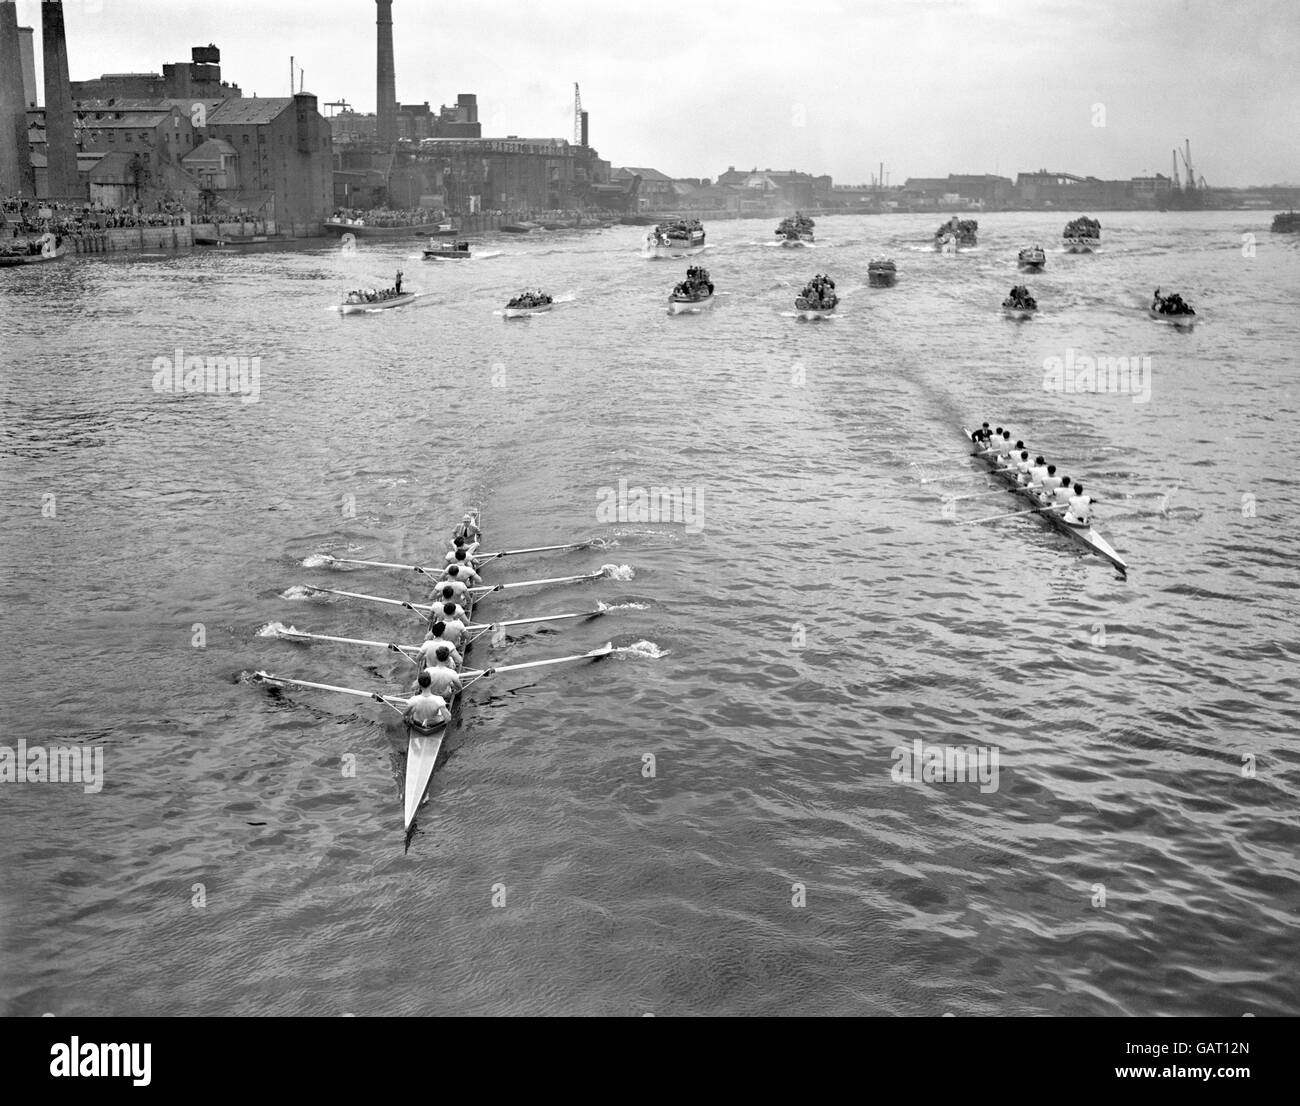 Rowing - Oxford v Cambridge Boat Race - London - 1960 - Stock Image